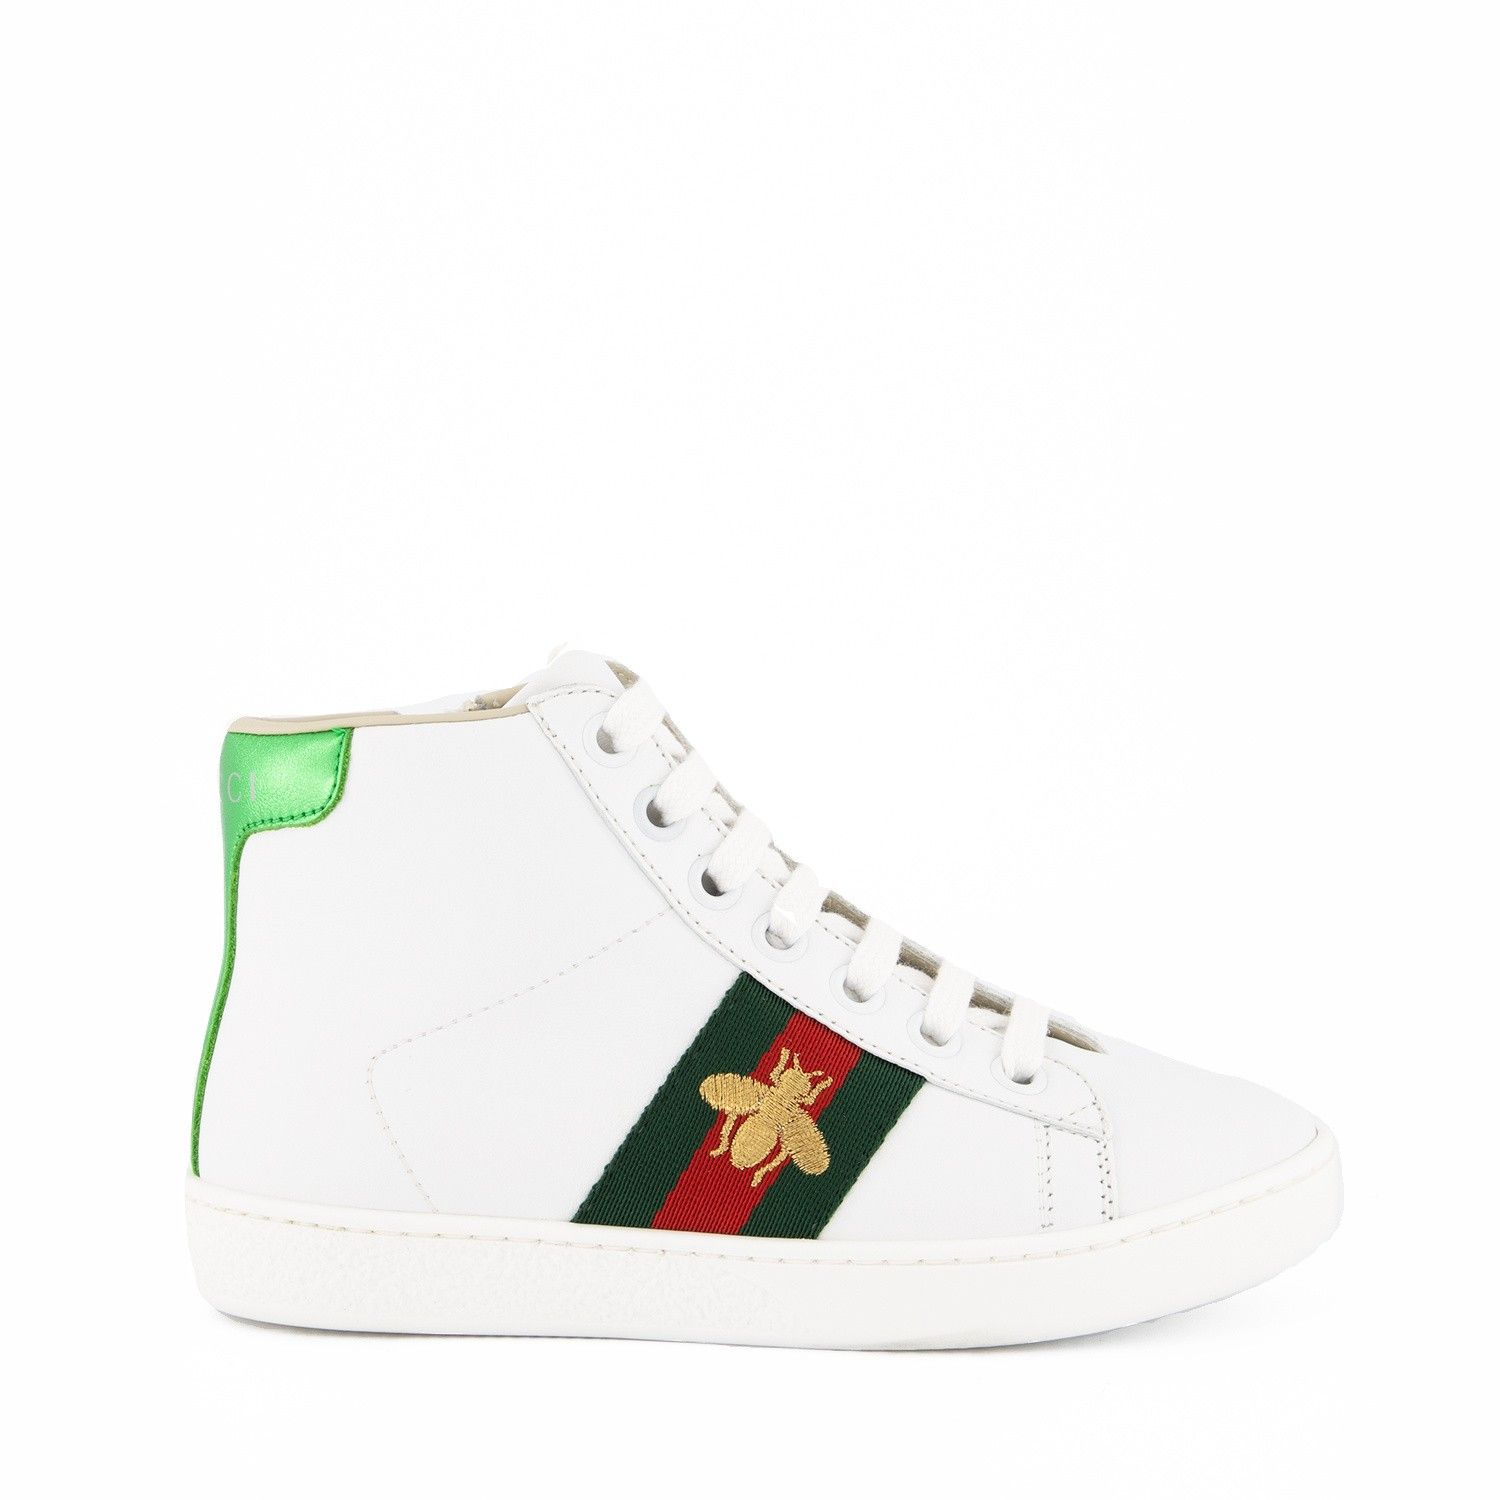 Picture of Gucci 526166 kids sneakers white